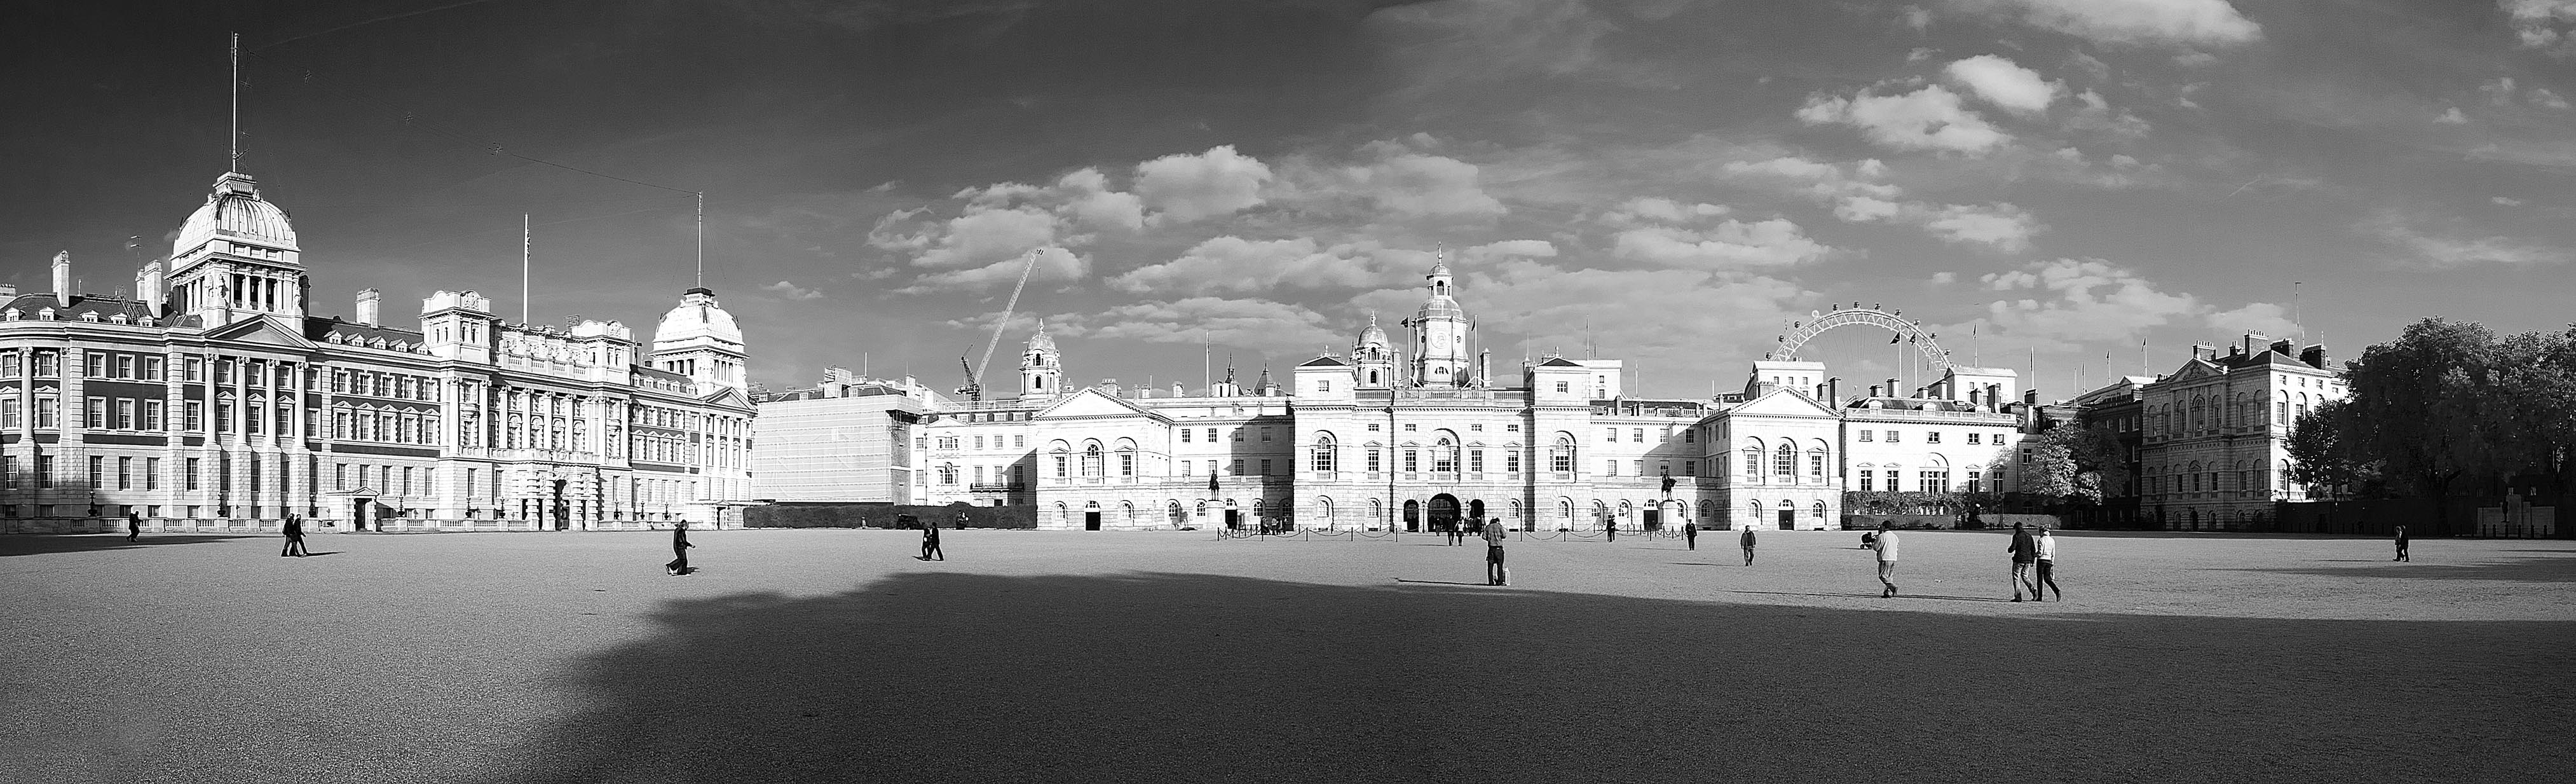 Panoramic view of Horse Guards Parade – BW